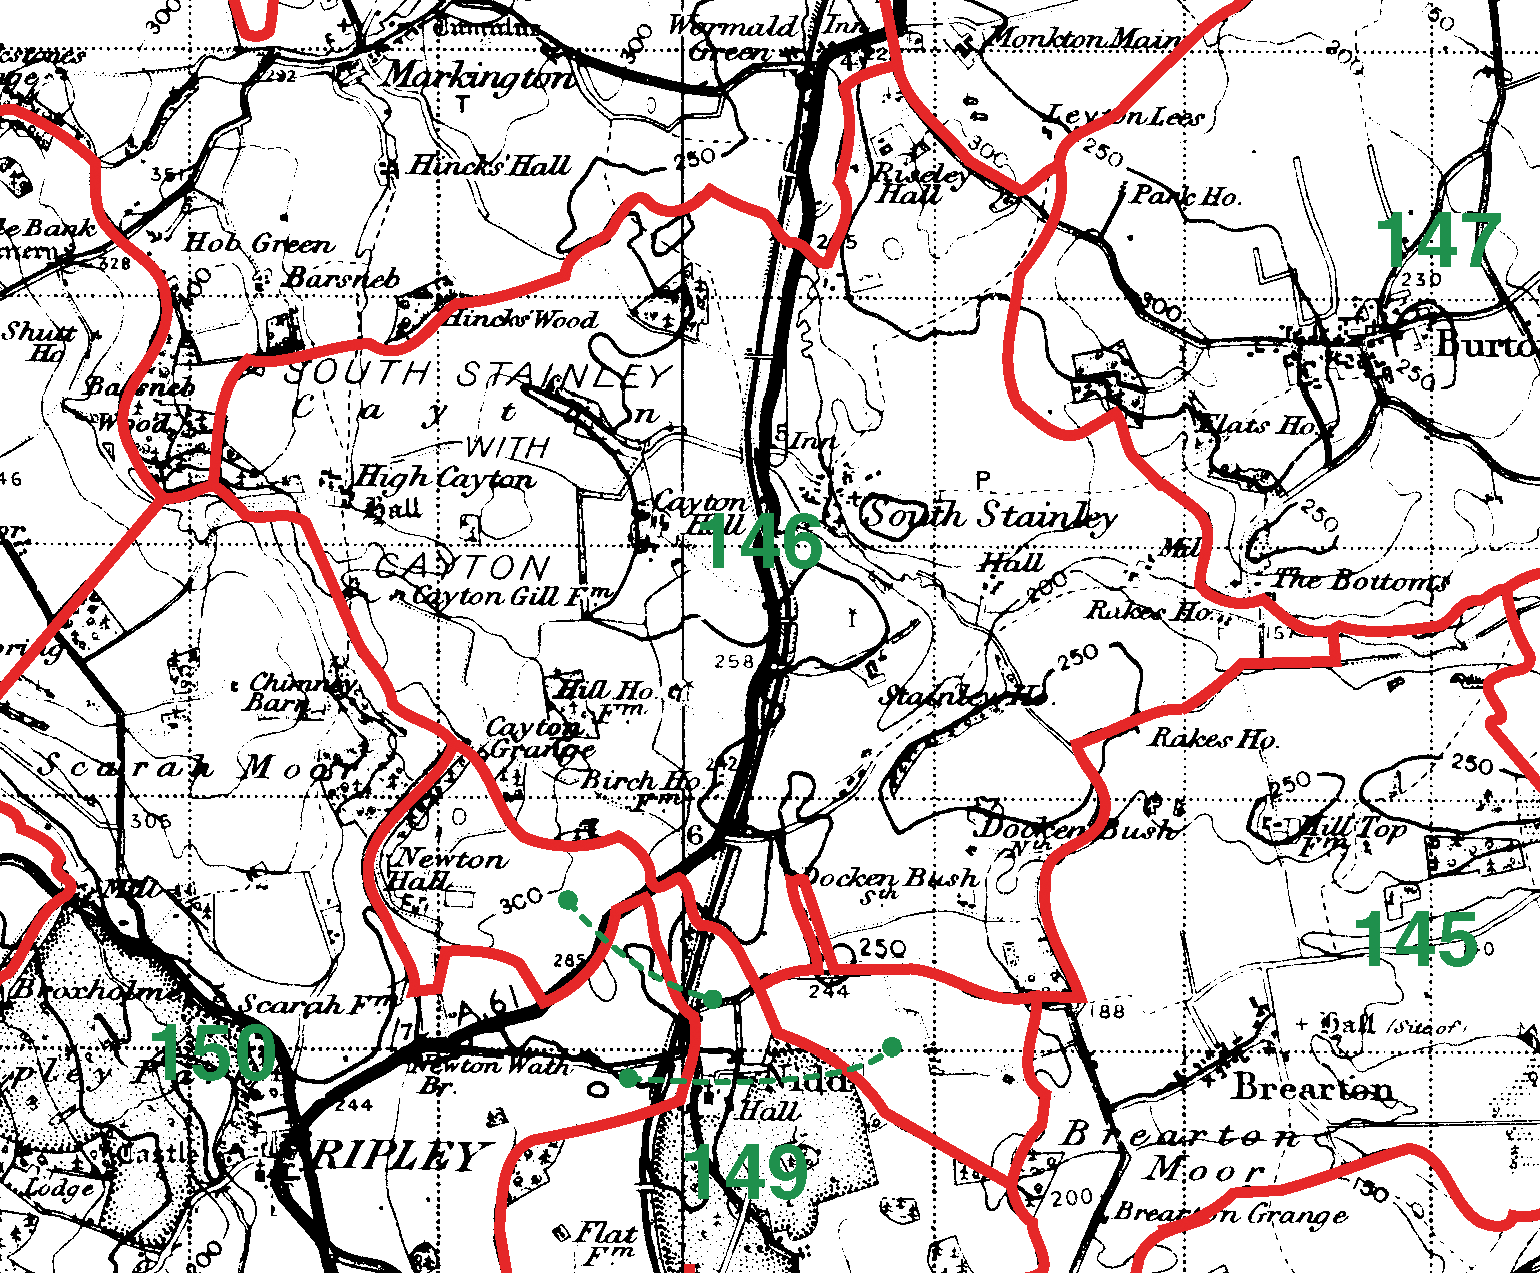 South Stainley boundaries map